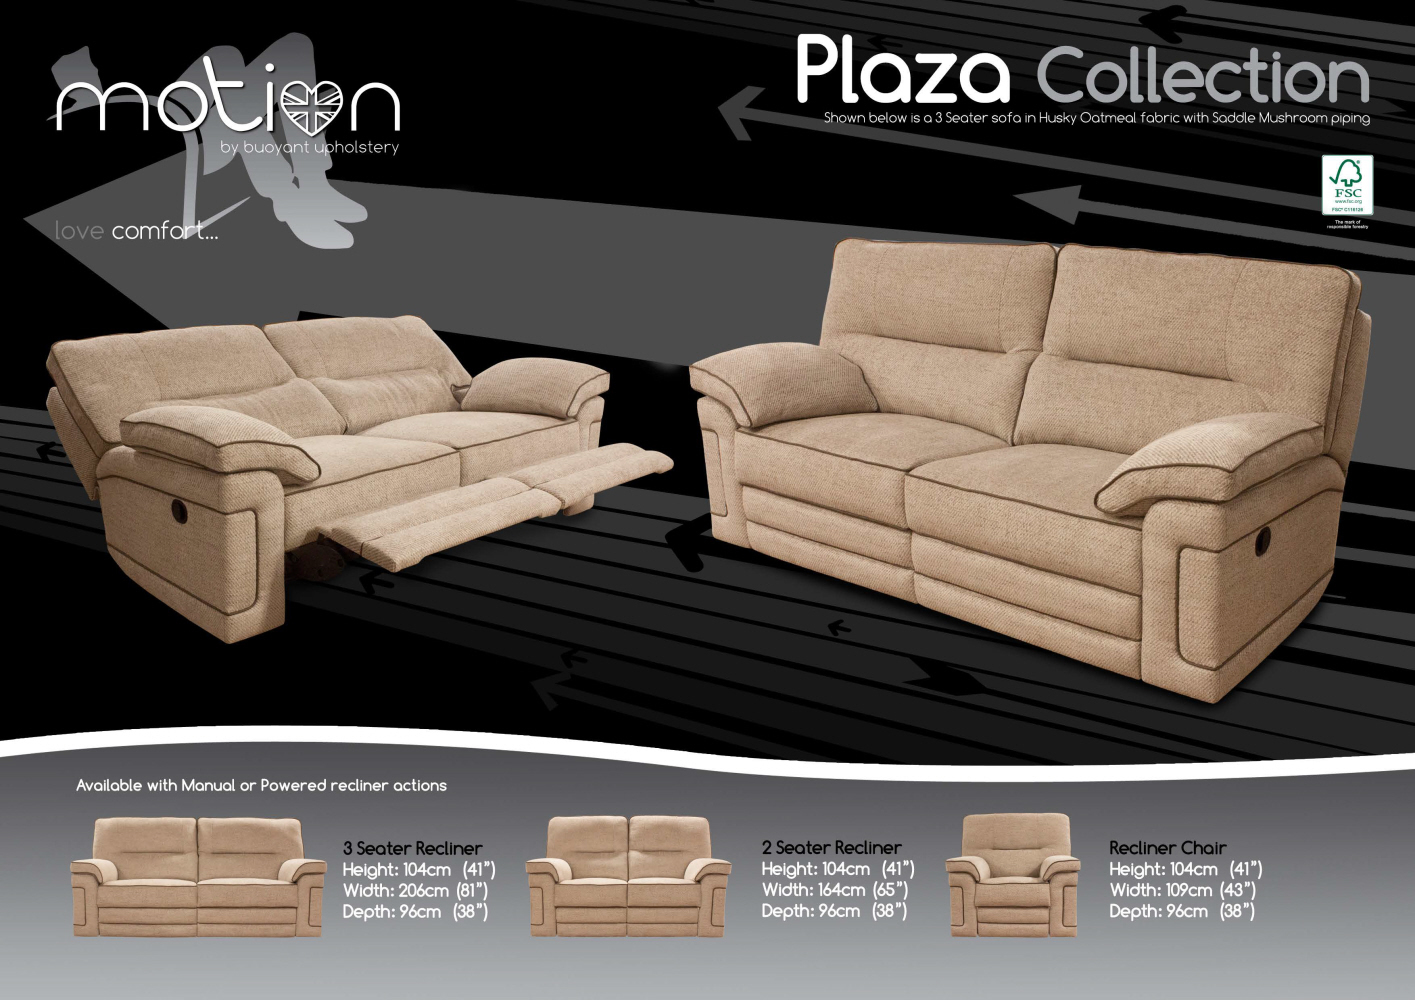 Buoyant Plaza 2 Seater Electric Reclining Sofa : 2 seater electric recliner sofa - islam-shia.org